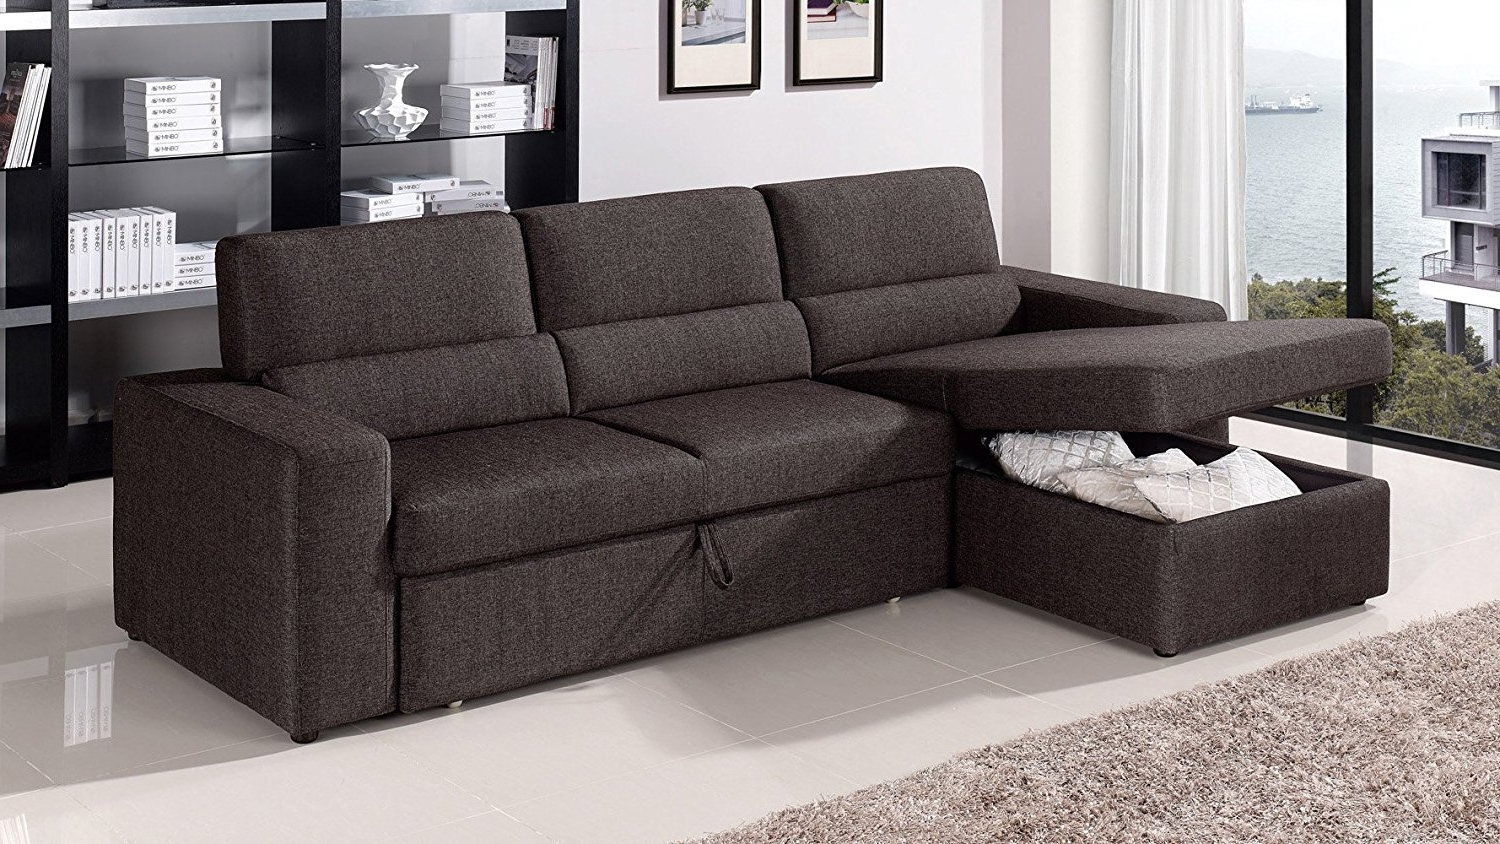 Sleeper Sofa Sectionals With Chaise Intended For Current Amazon: Black/brown Clubber Sleeper Sectional Sofa – Left (View 11 of 15)